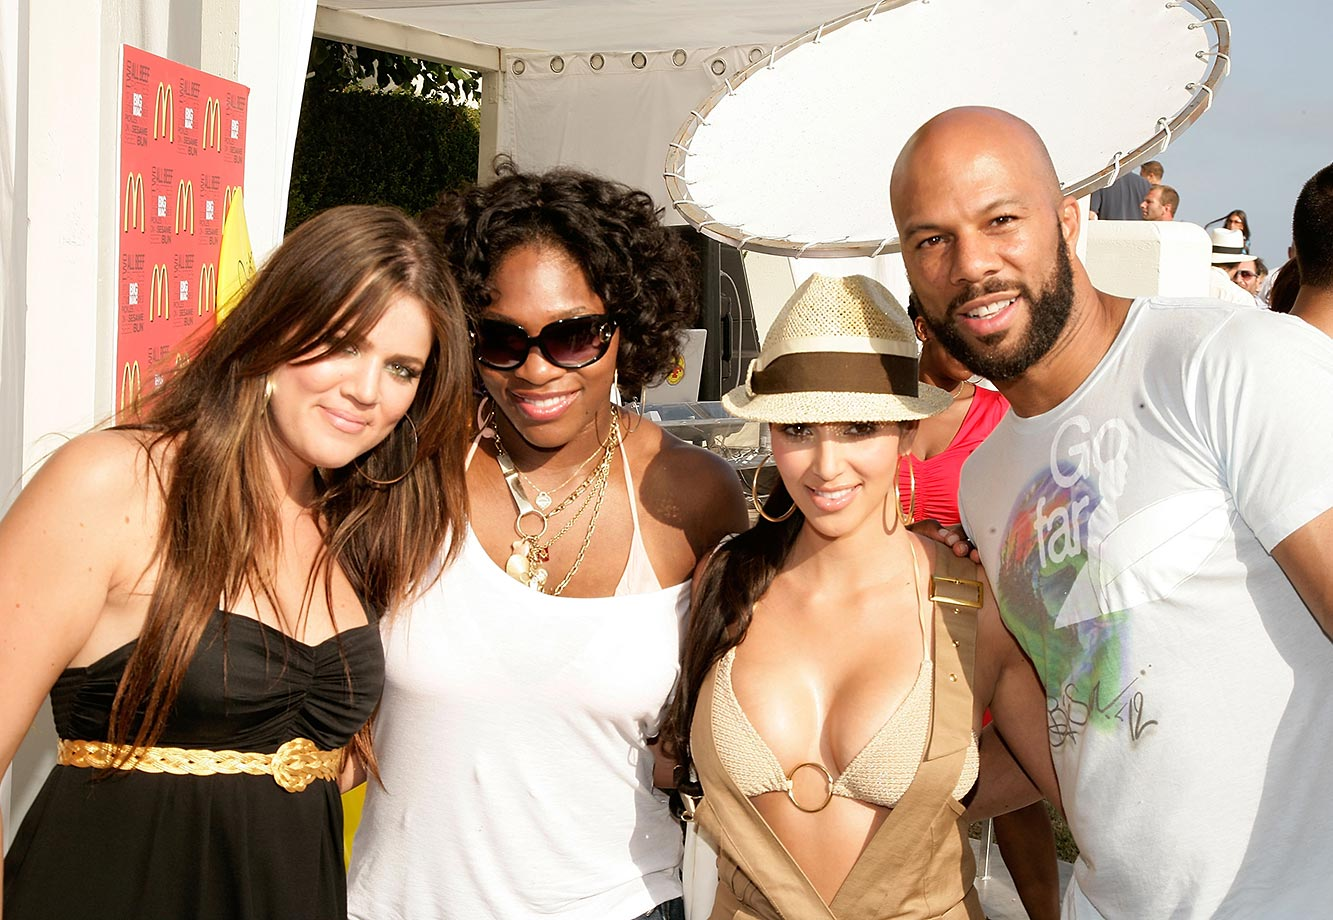 The Williams sisters haven't limited their focus to just tennis. In 2009, the pair purchased a stake in the Miami Dolphins, becoming the first female African-Americans to own a stake in an NFL franchise. Here Serena poses with reality stars Kim and Khloe Kardashian and rapper Common.